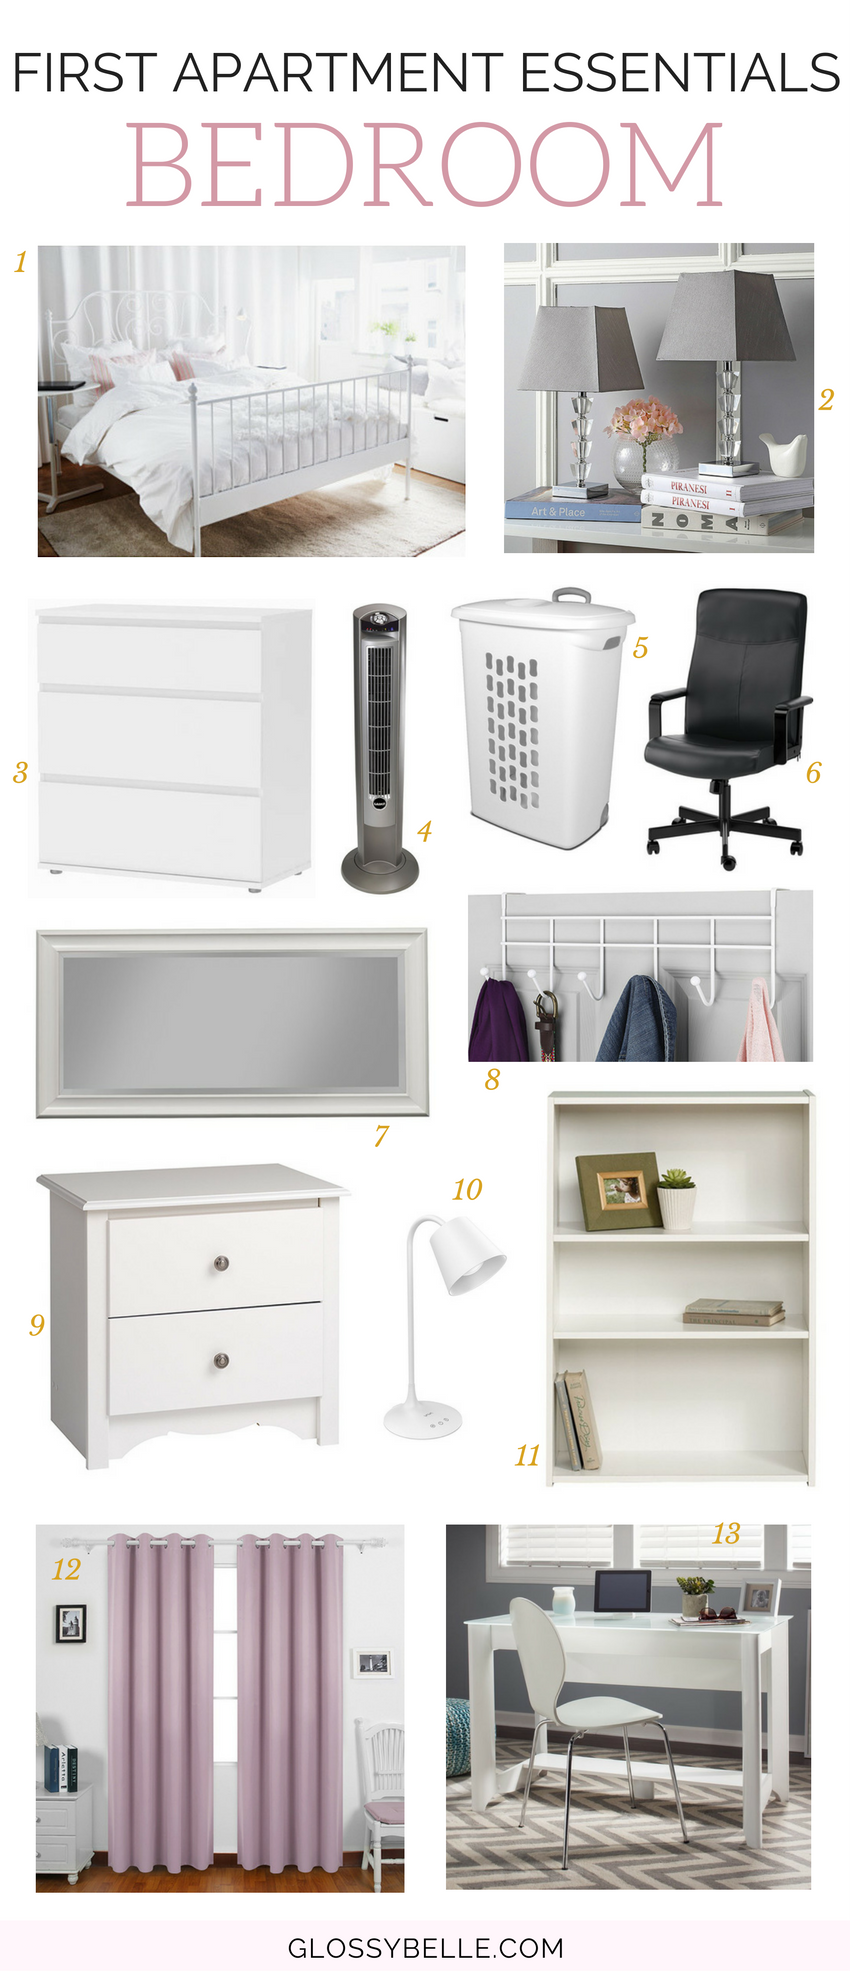 If you're about to move out into your first apartment, here are the most important apartment essentials you'll need to be ready to move out on your own.   adulting   move out for the first time   moving out   independence   college essentials   college dorm   room essentials   home decor   bedroom essentials #apartment #furniture #furnitureideas #adulting #homedecor #bedroomideas #bedroomdecor #bedroomdecoratingideas